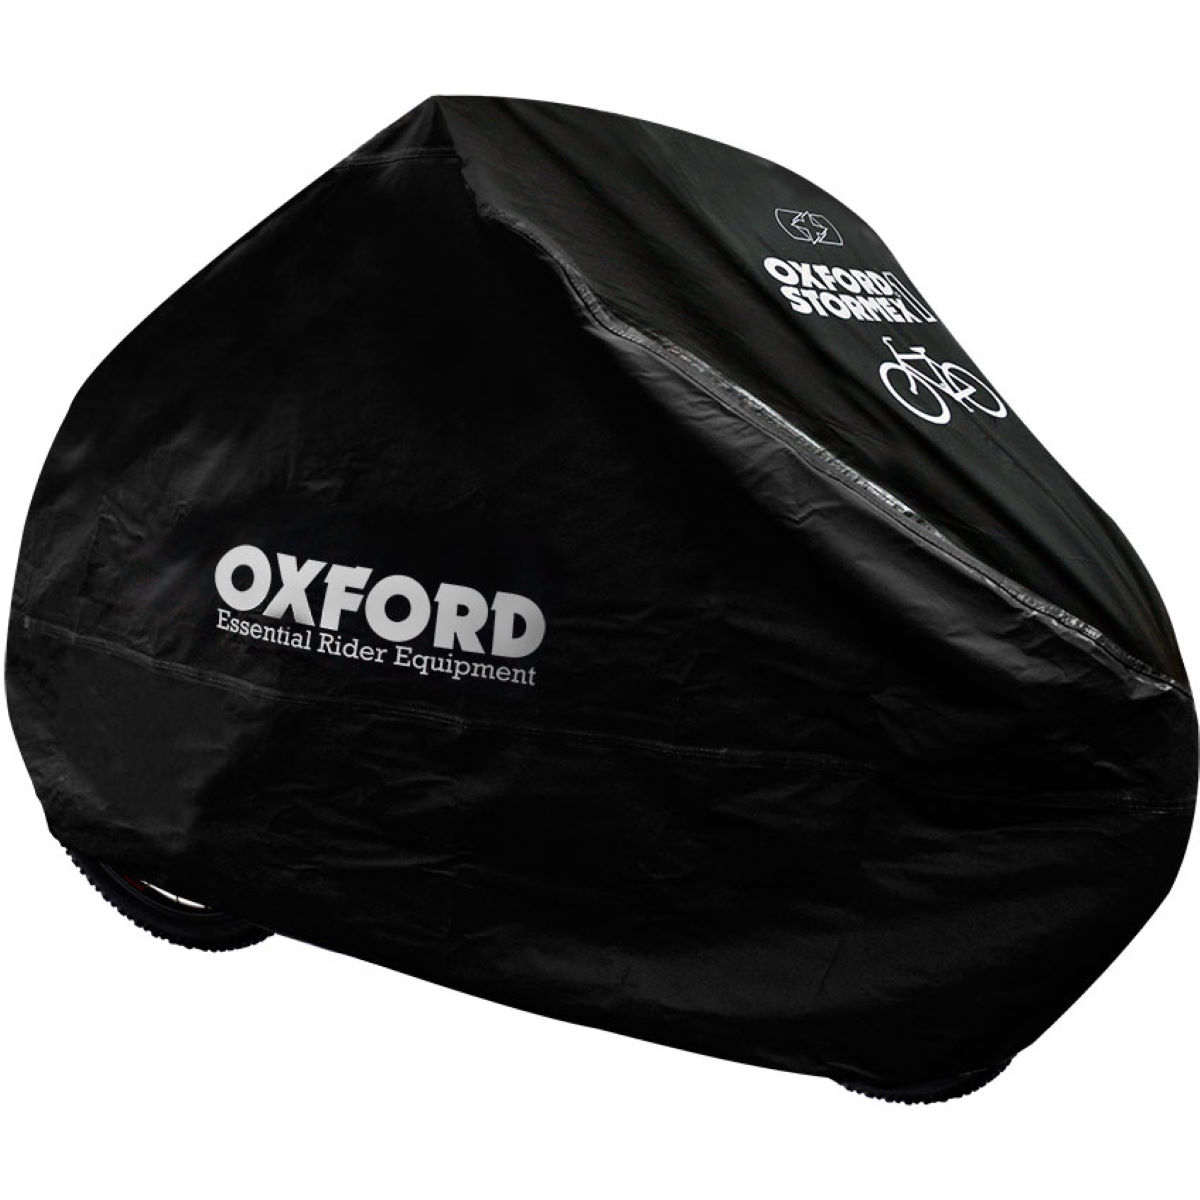 Oxford Oxford Stormex Single Bicycle Cover   Bike Covers